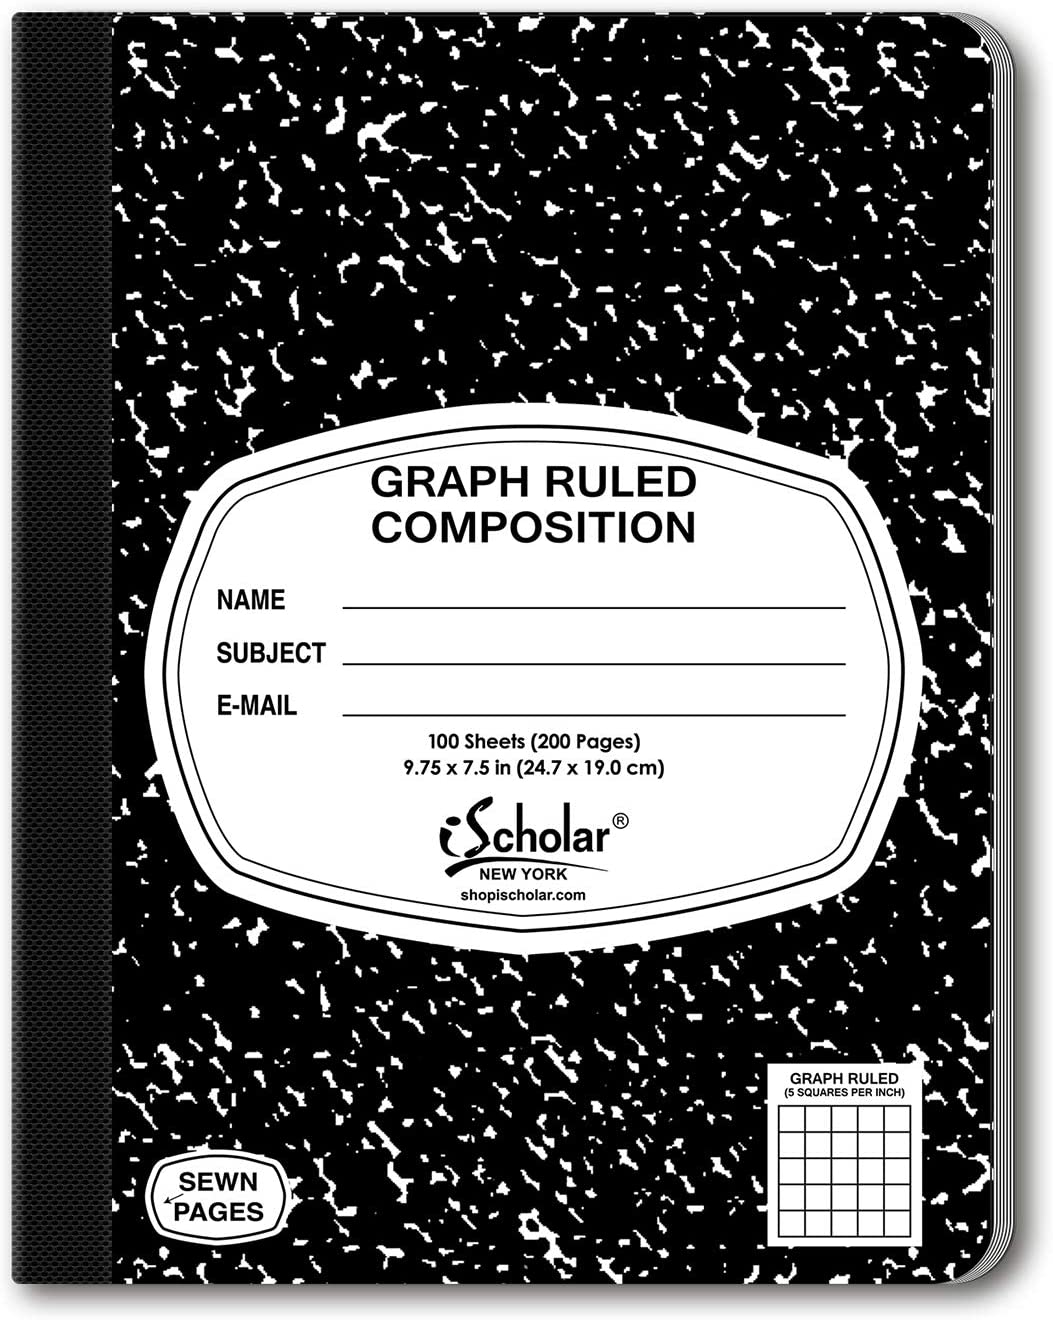 iScholar Composition Book, 100 Sheets, 5 x 5 Graph Ruled, 9.75 x 7.5-Inches, Black Marble Cover (11100)